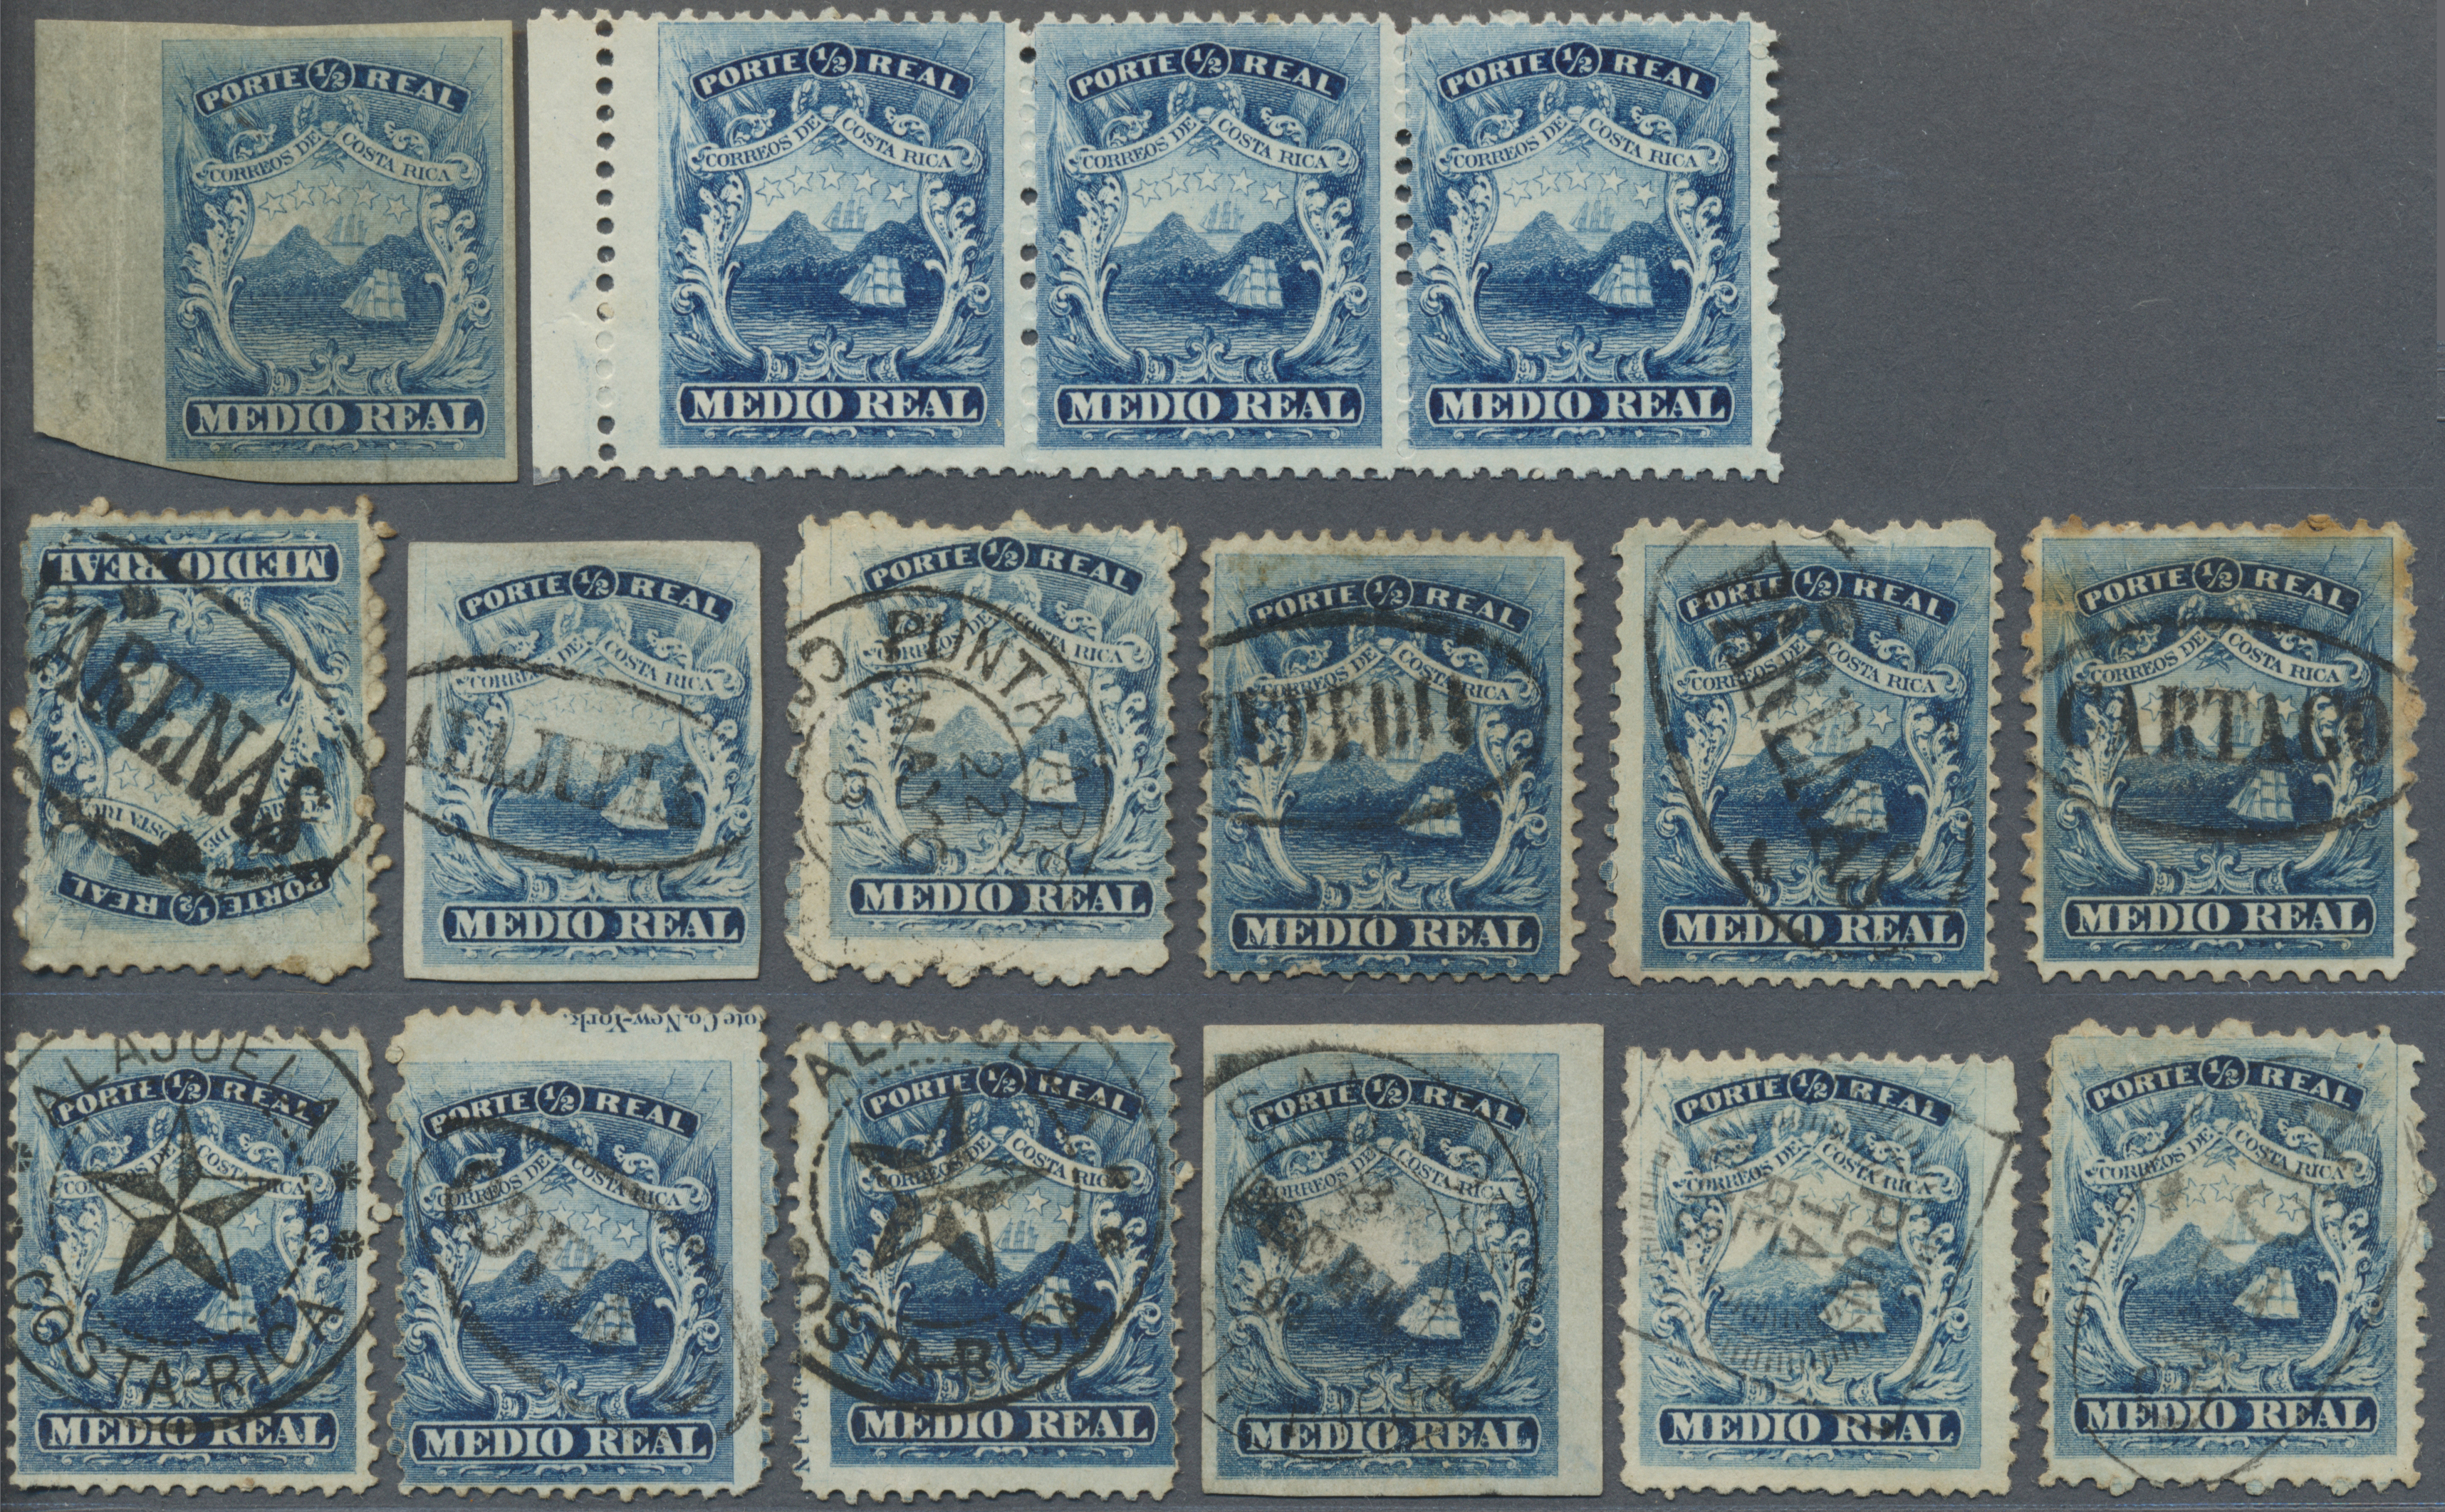 Lot 598 - Costa Rica  -  Auktionshaus Christoph Gärtner GmbH & Co. KG Auction #41 Special auction part one